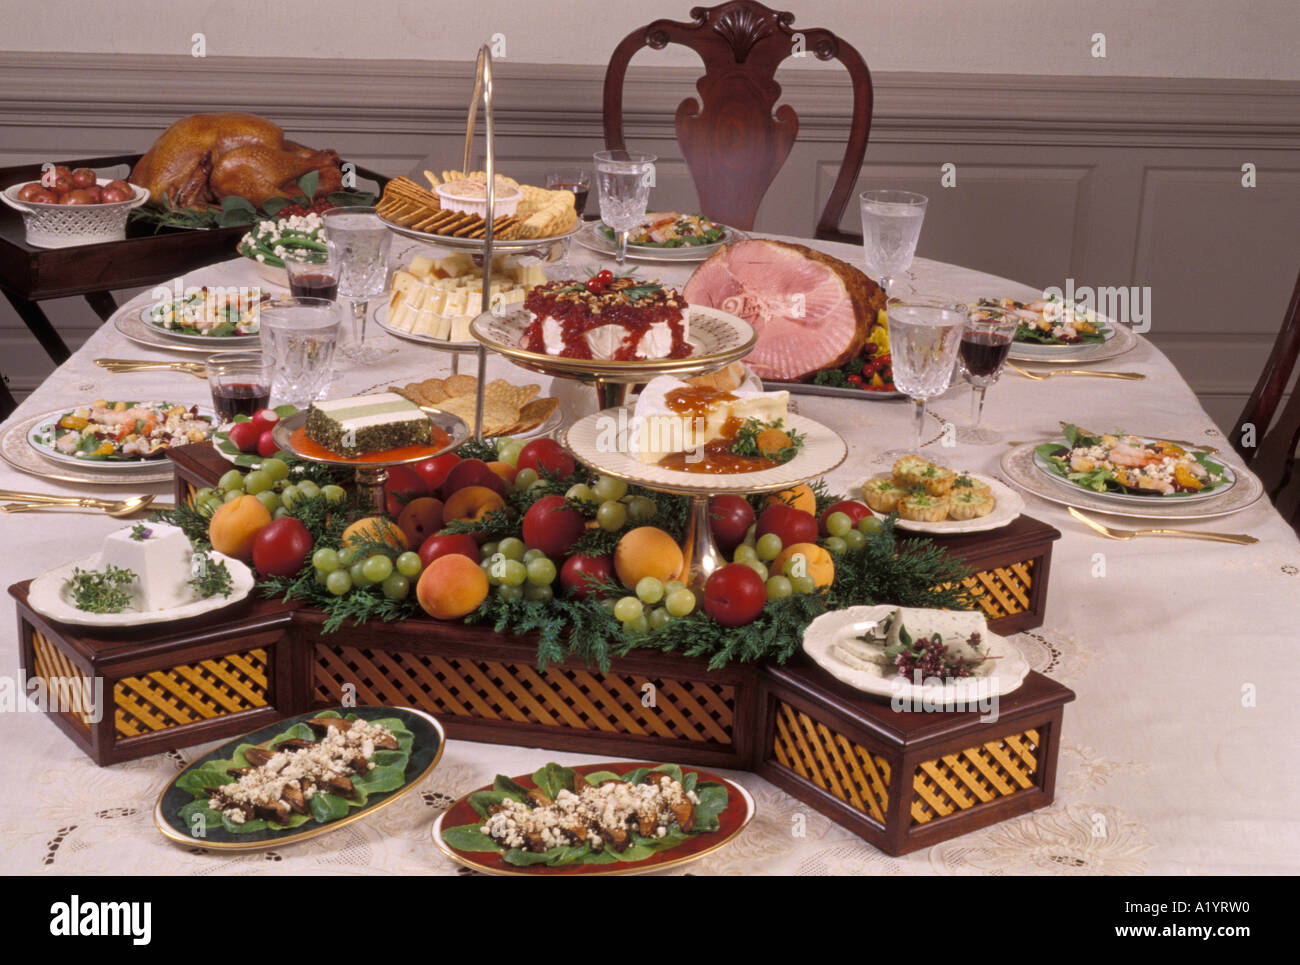 Family Gathering Sunday Holiday Style Formal Dinner Table Setting Arrangement